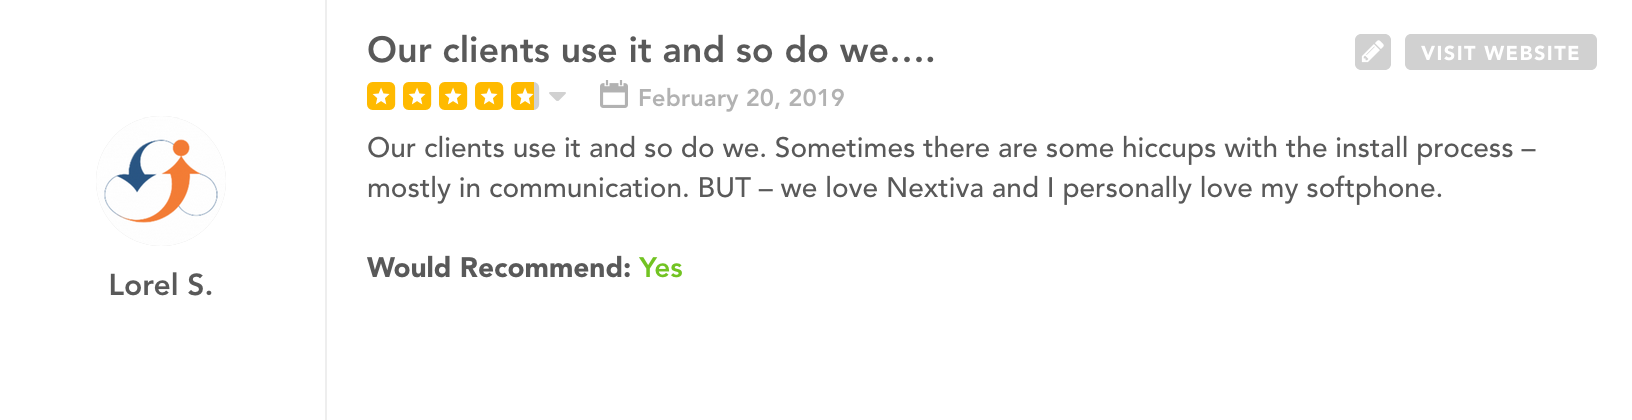 Nextiva Reviews: GetVoIP Review 3